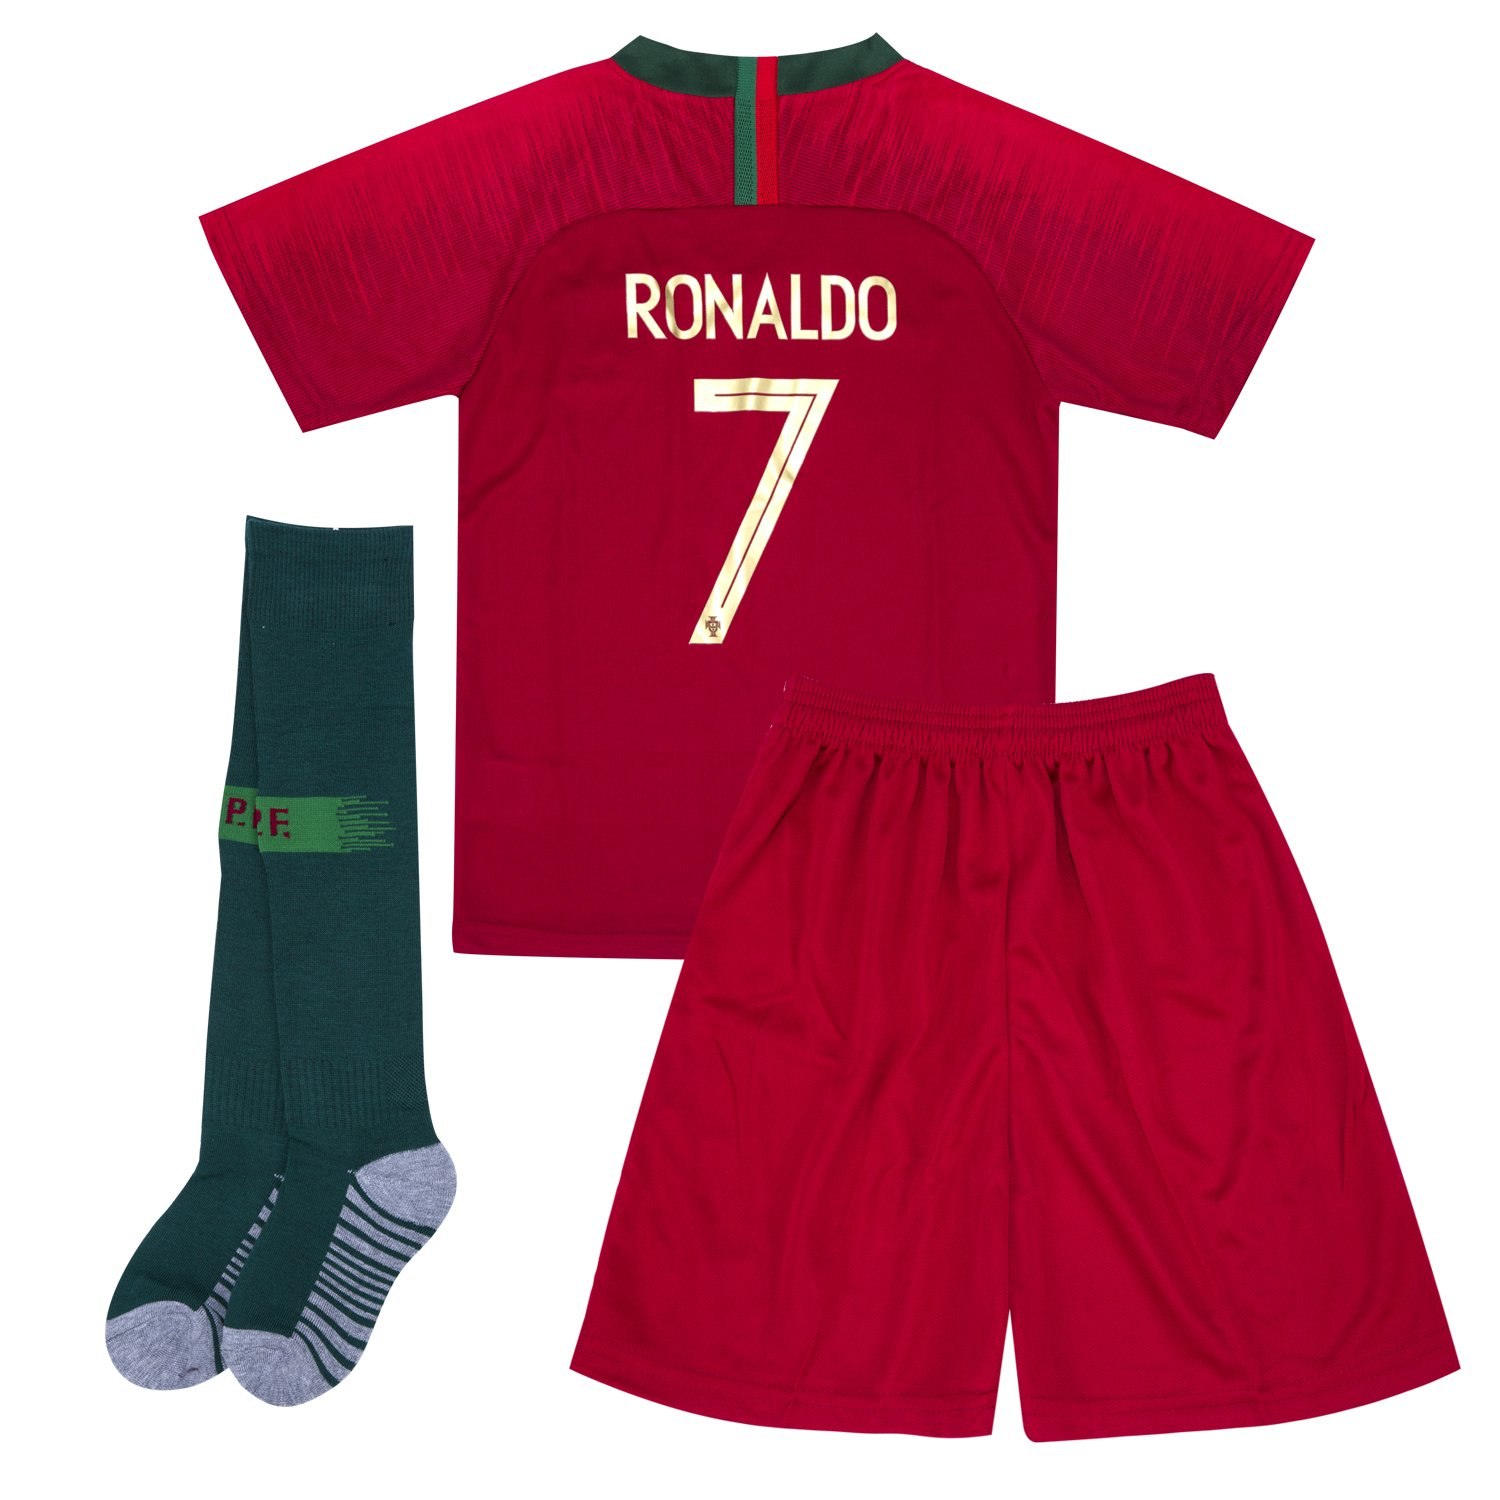 7c9e50d05 Amazon.com  2018 Russia World Cup Portugal  7 C Ronaldo National Team Home  Kids Or Youth Soccer Jersey   Shorts   Socks Set Red 10-11Years  Clothing